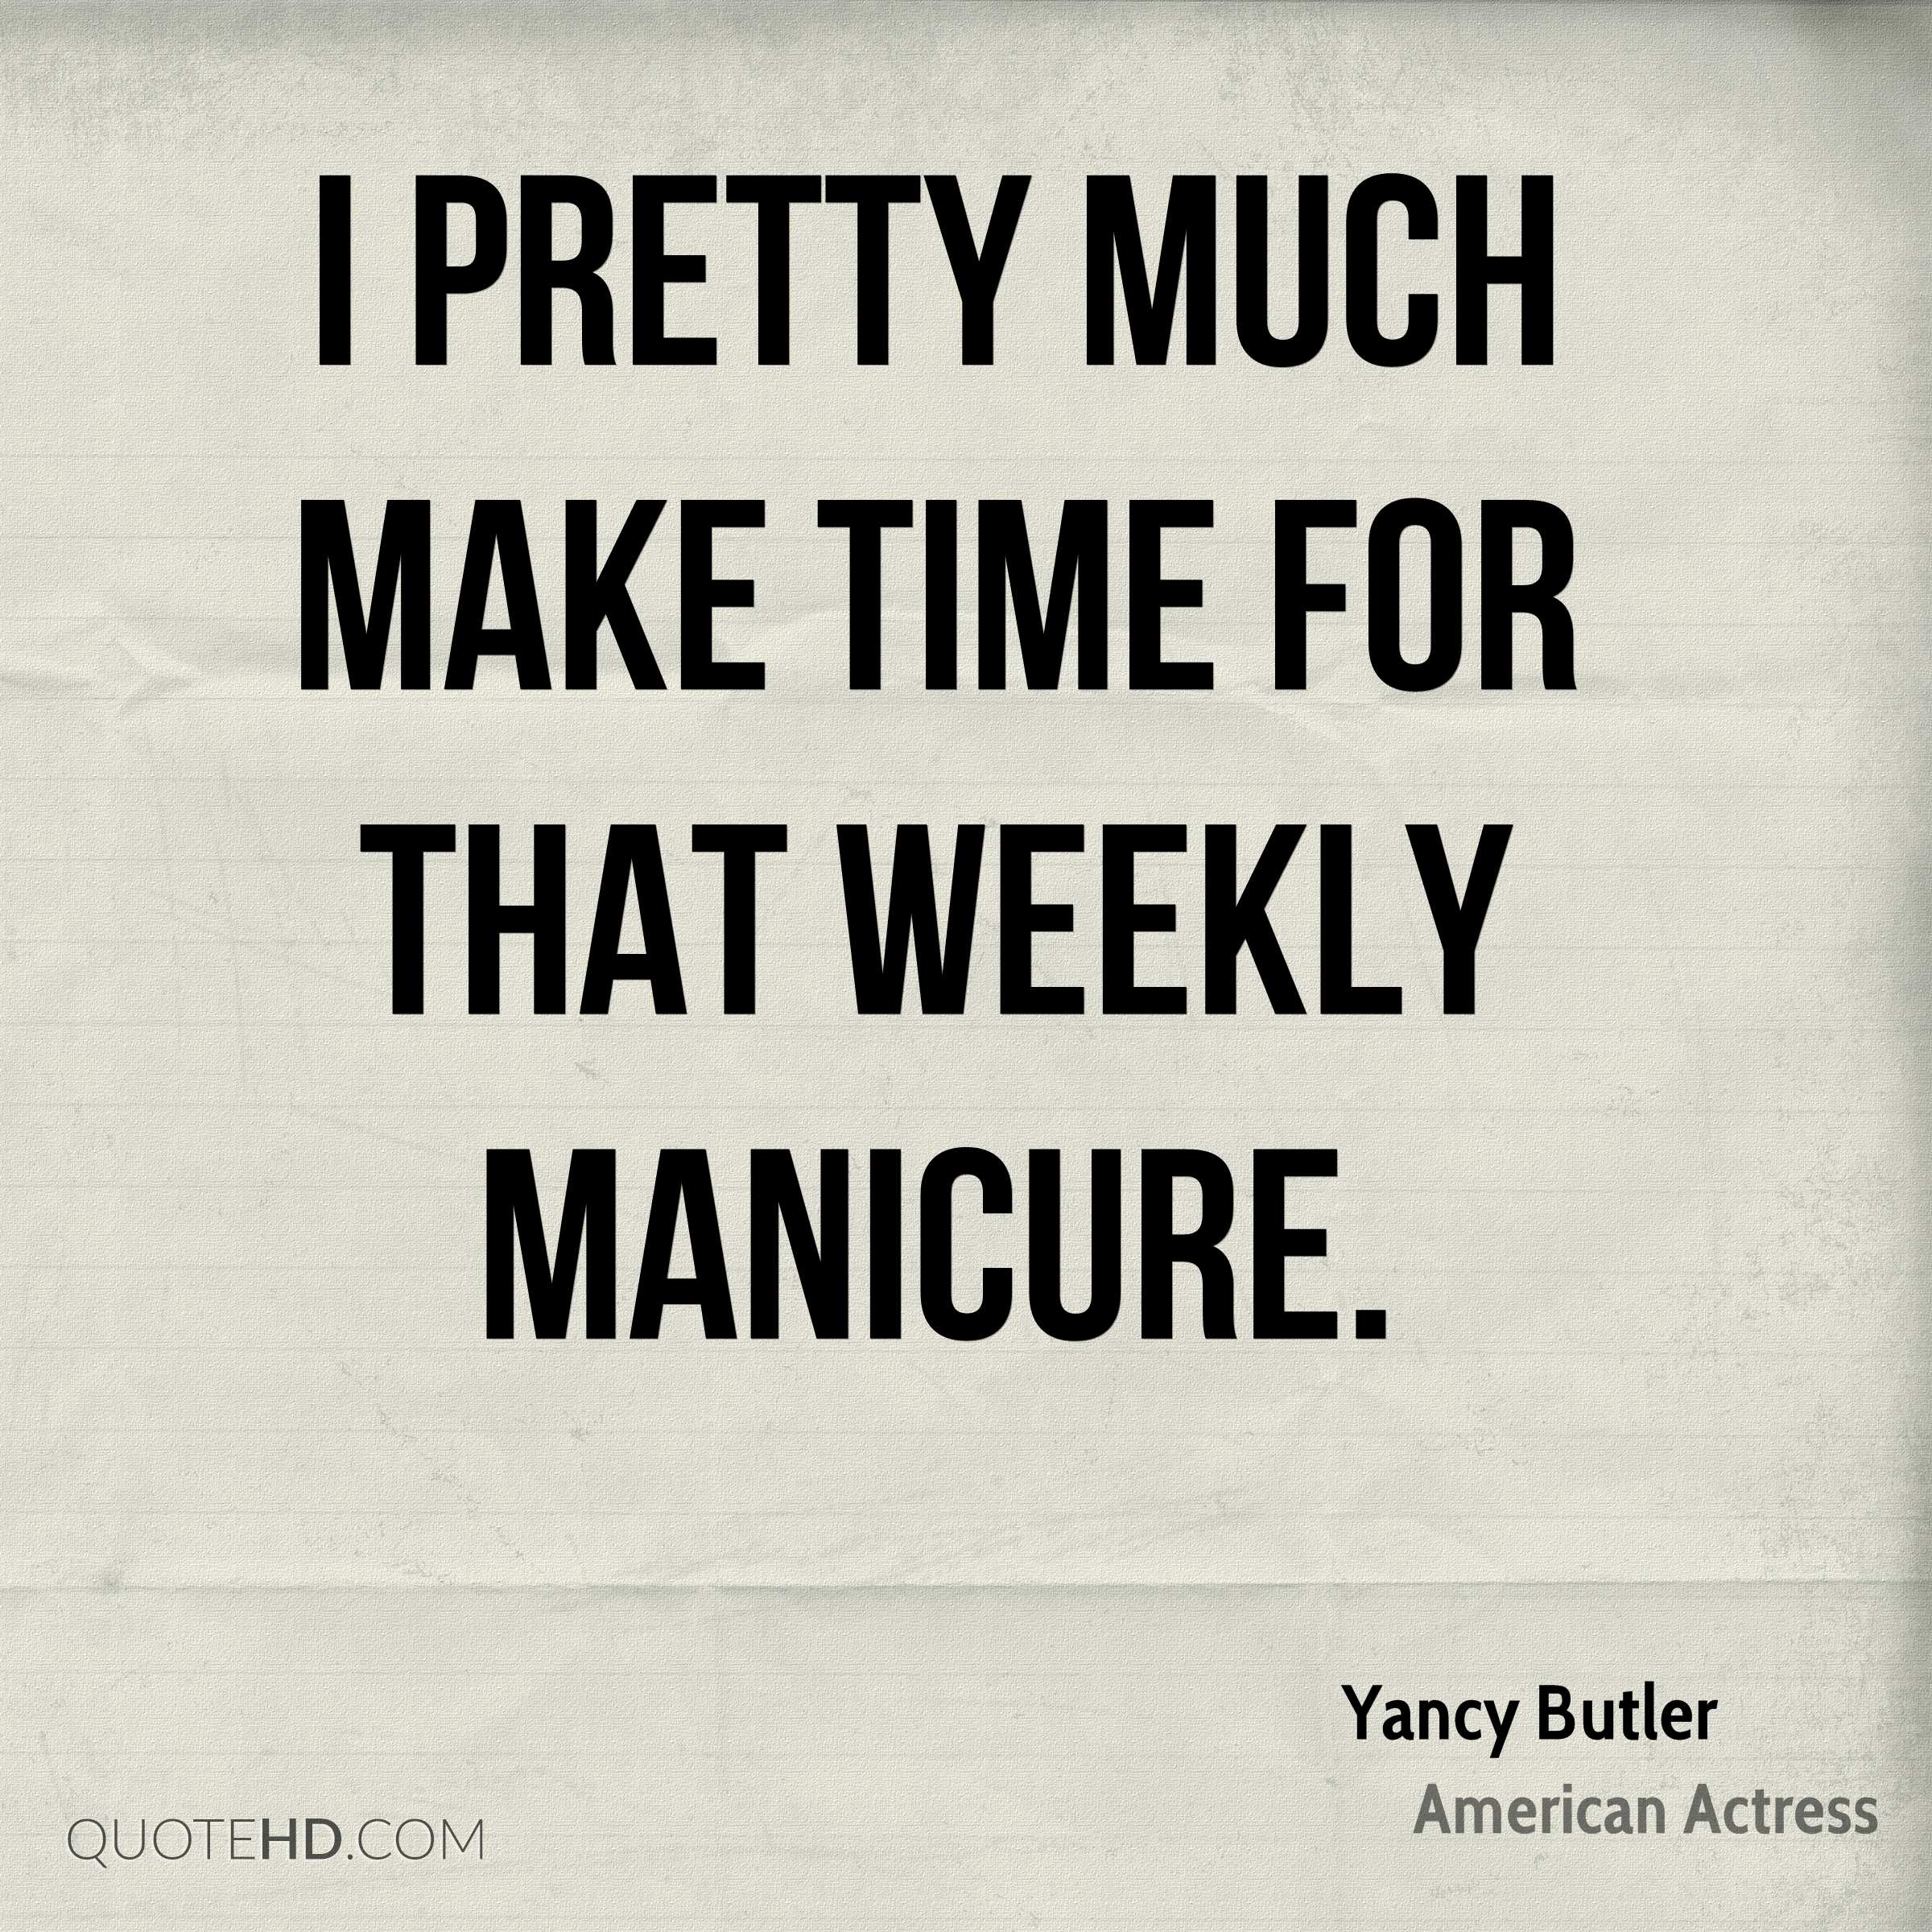 I pretty much make time for that weekly manicure.